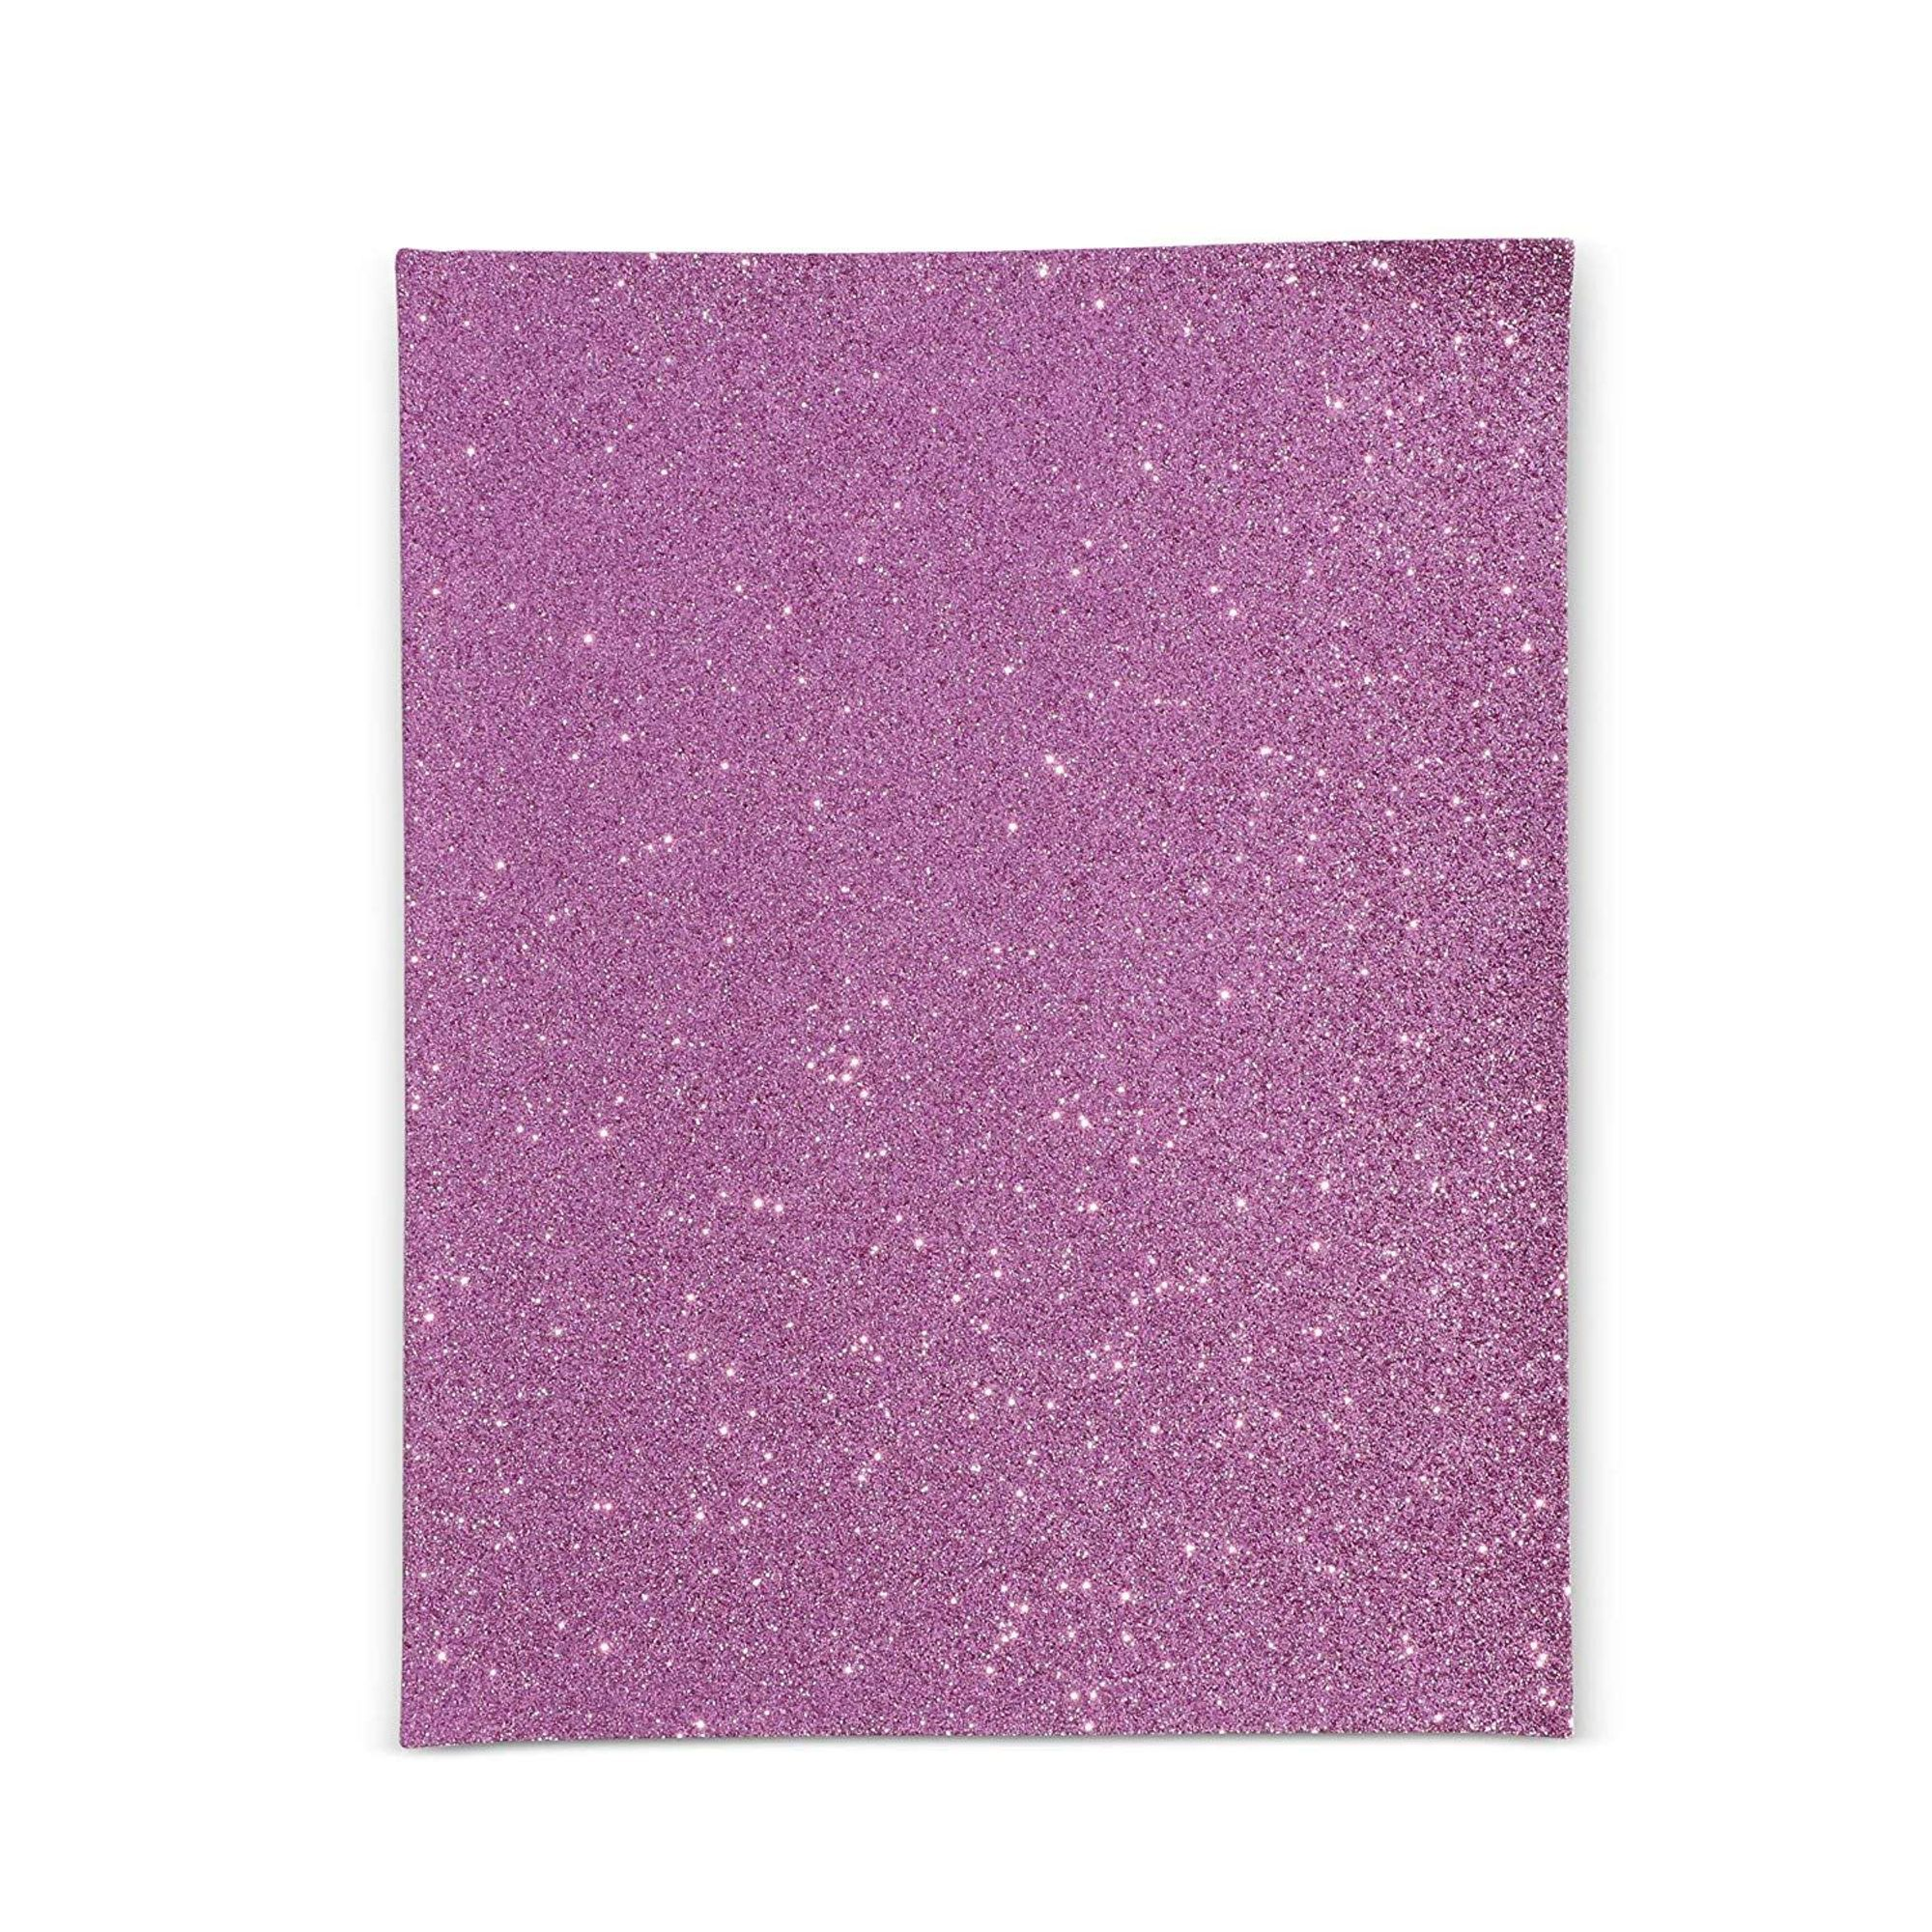 Popping Candy Premium Quality Chunky Glitter Fabric Sheet